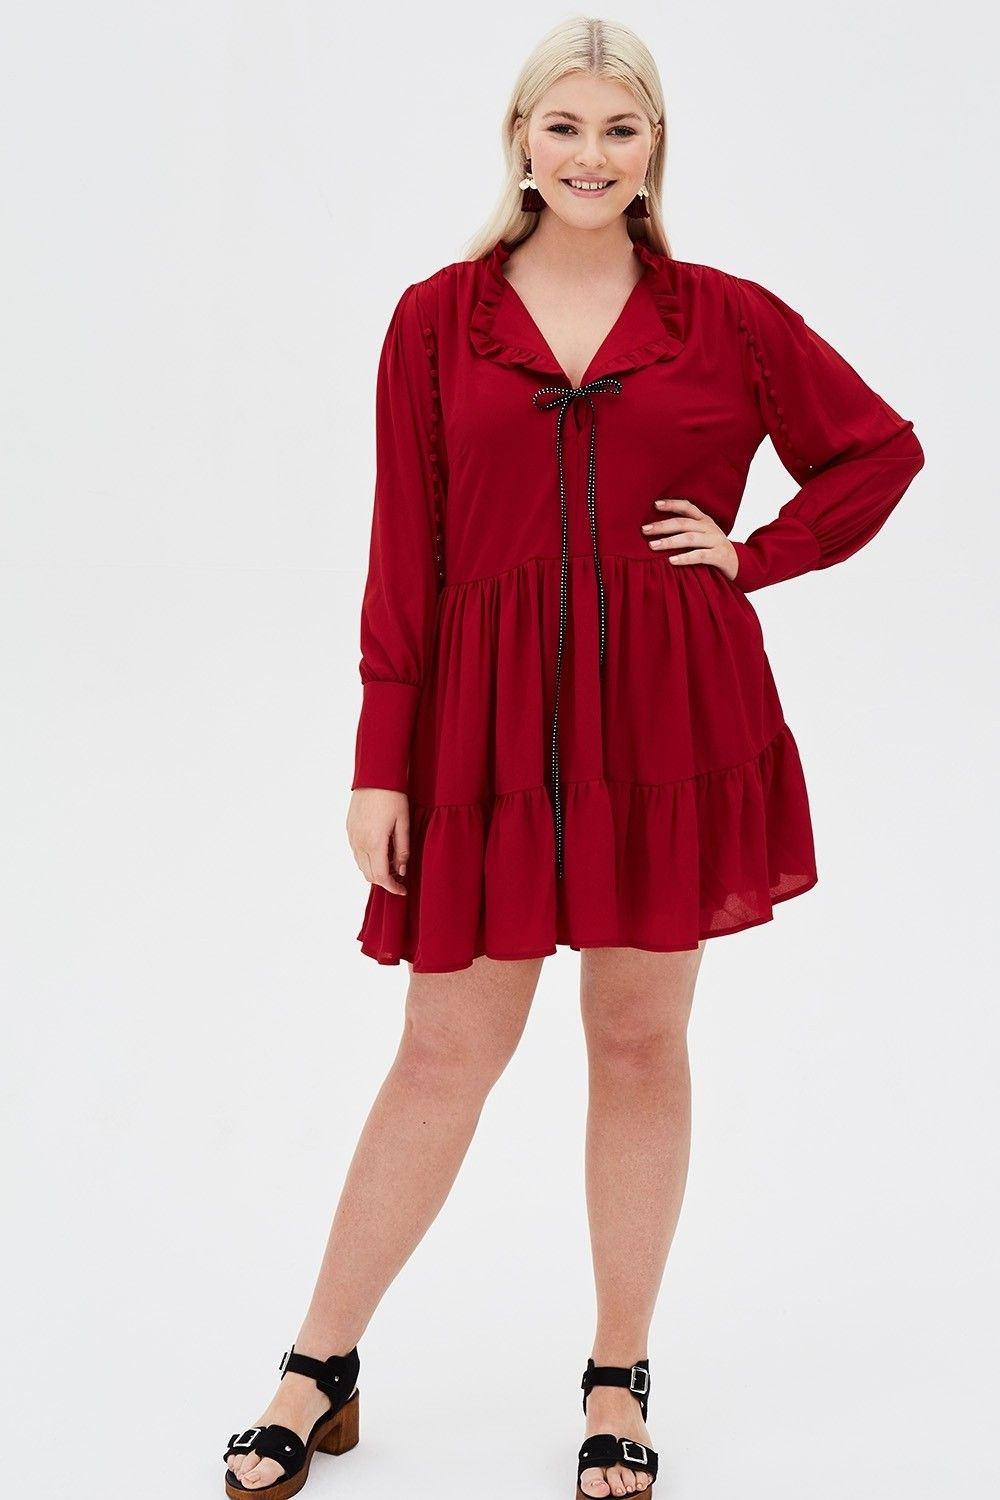 Weure thrilled that our poe dress comes in this striking red colour